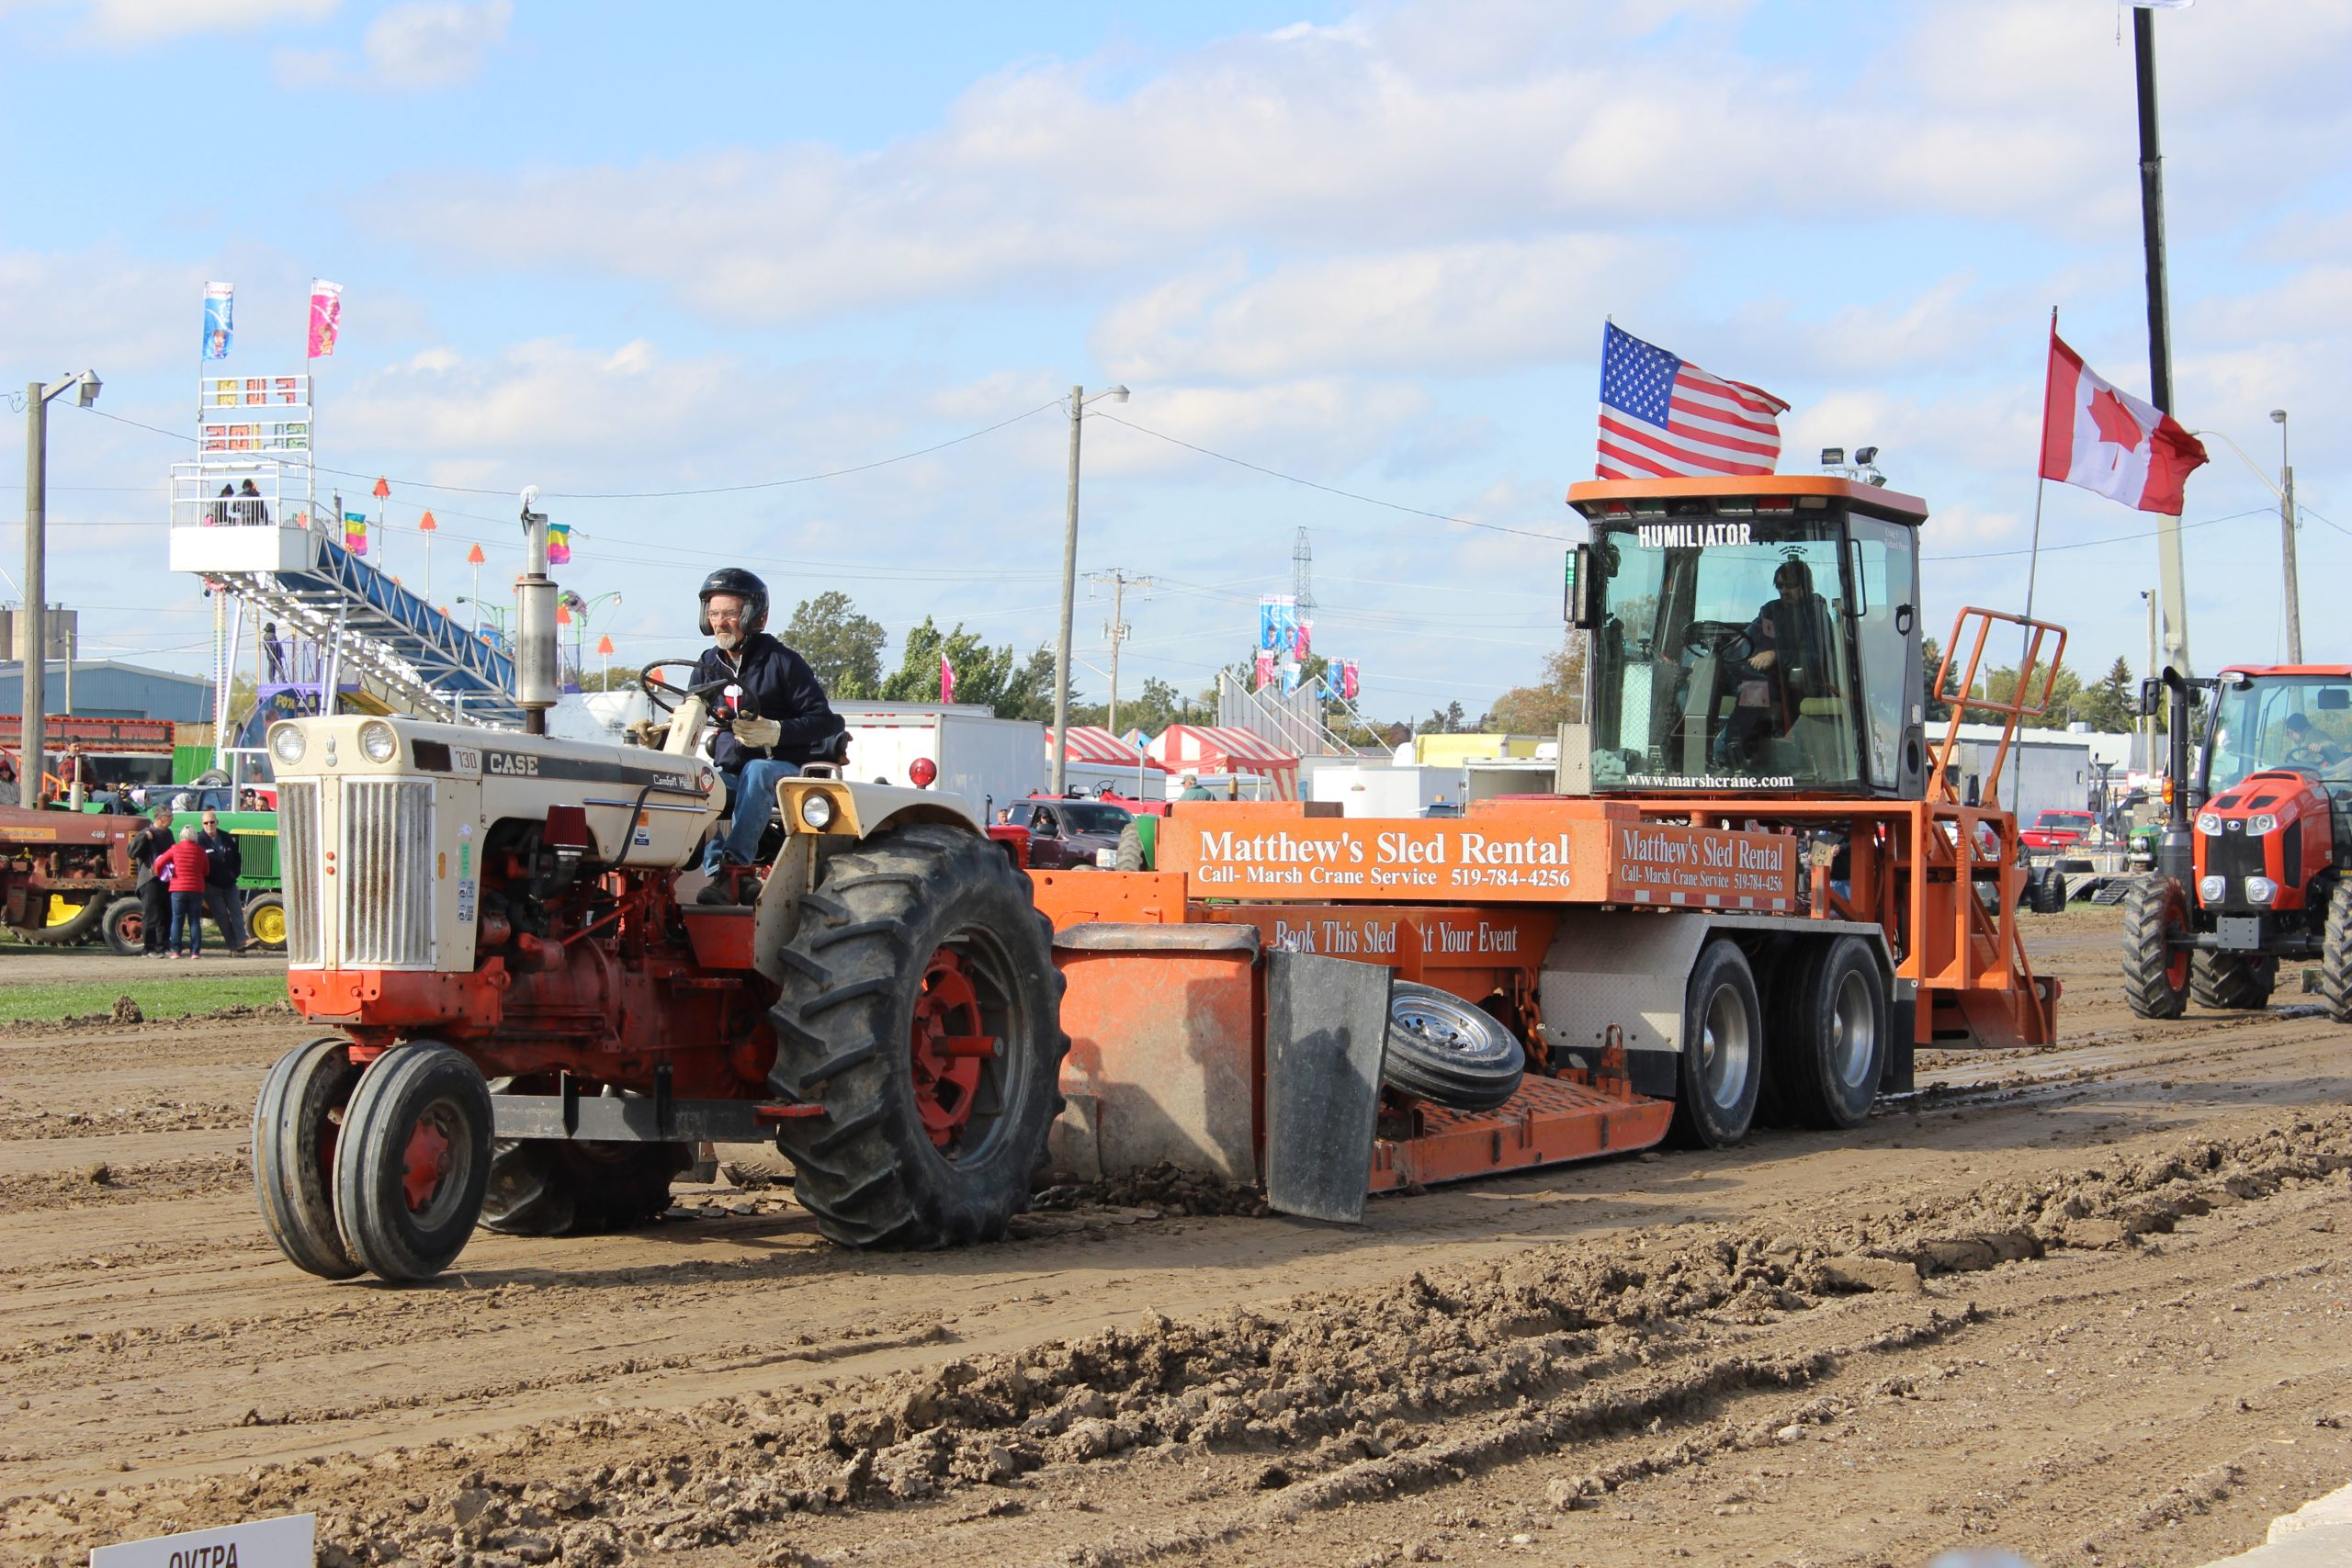 Tractor pulling sled